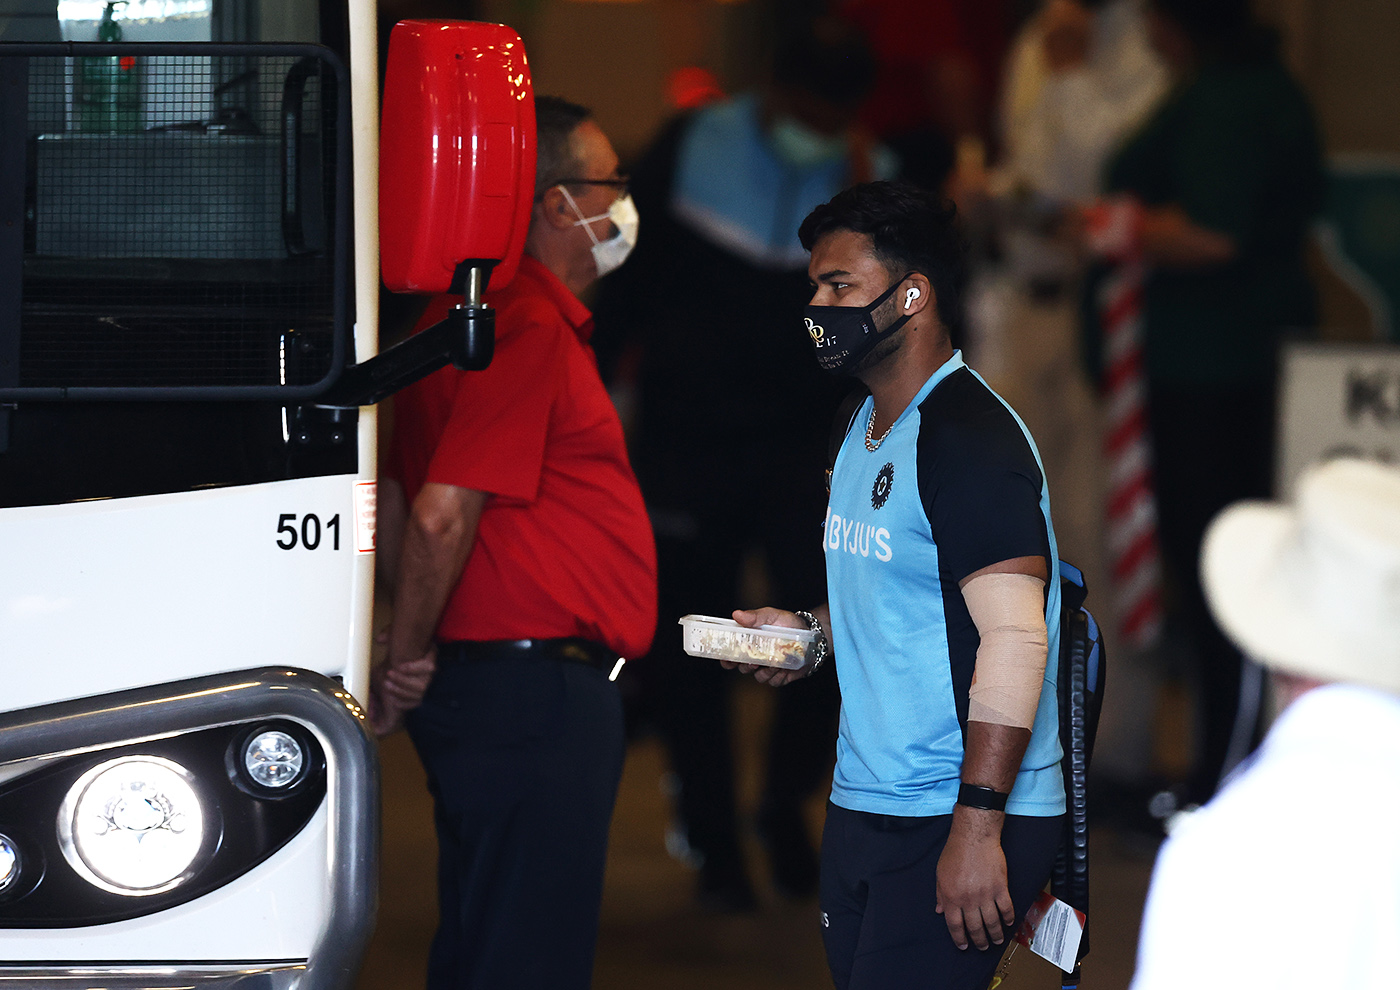 Hotel, bus, ground, repeat: Rishabh Pant during India's long multi-format Australia tour last year, which immediately followed the IPL in the UAE and preceded India's four-Test home series against England